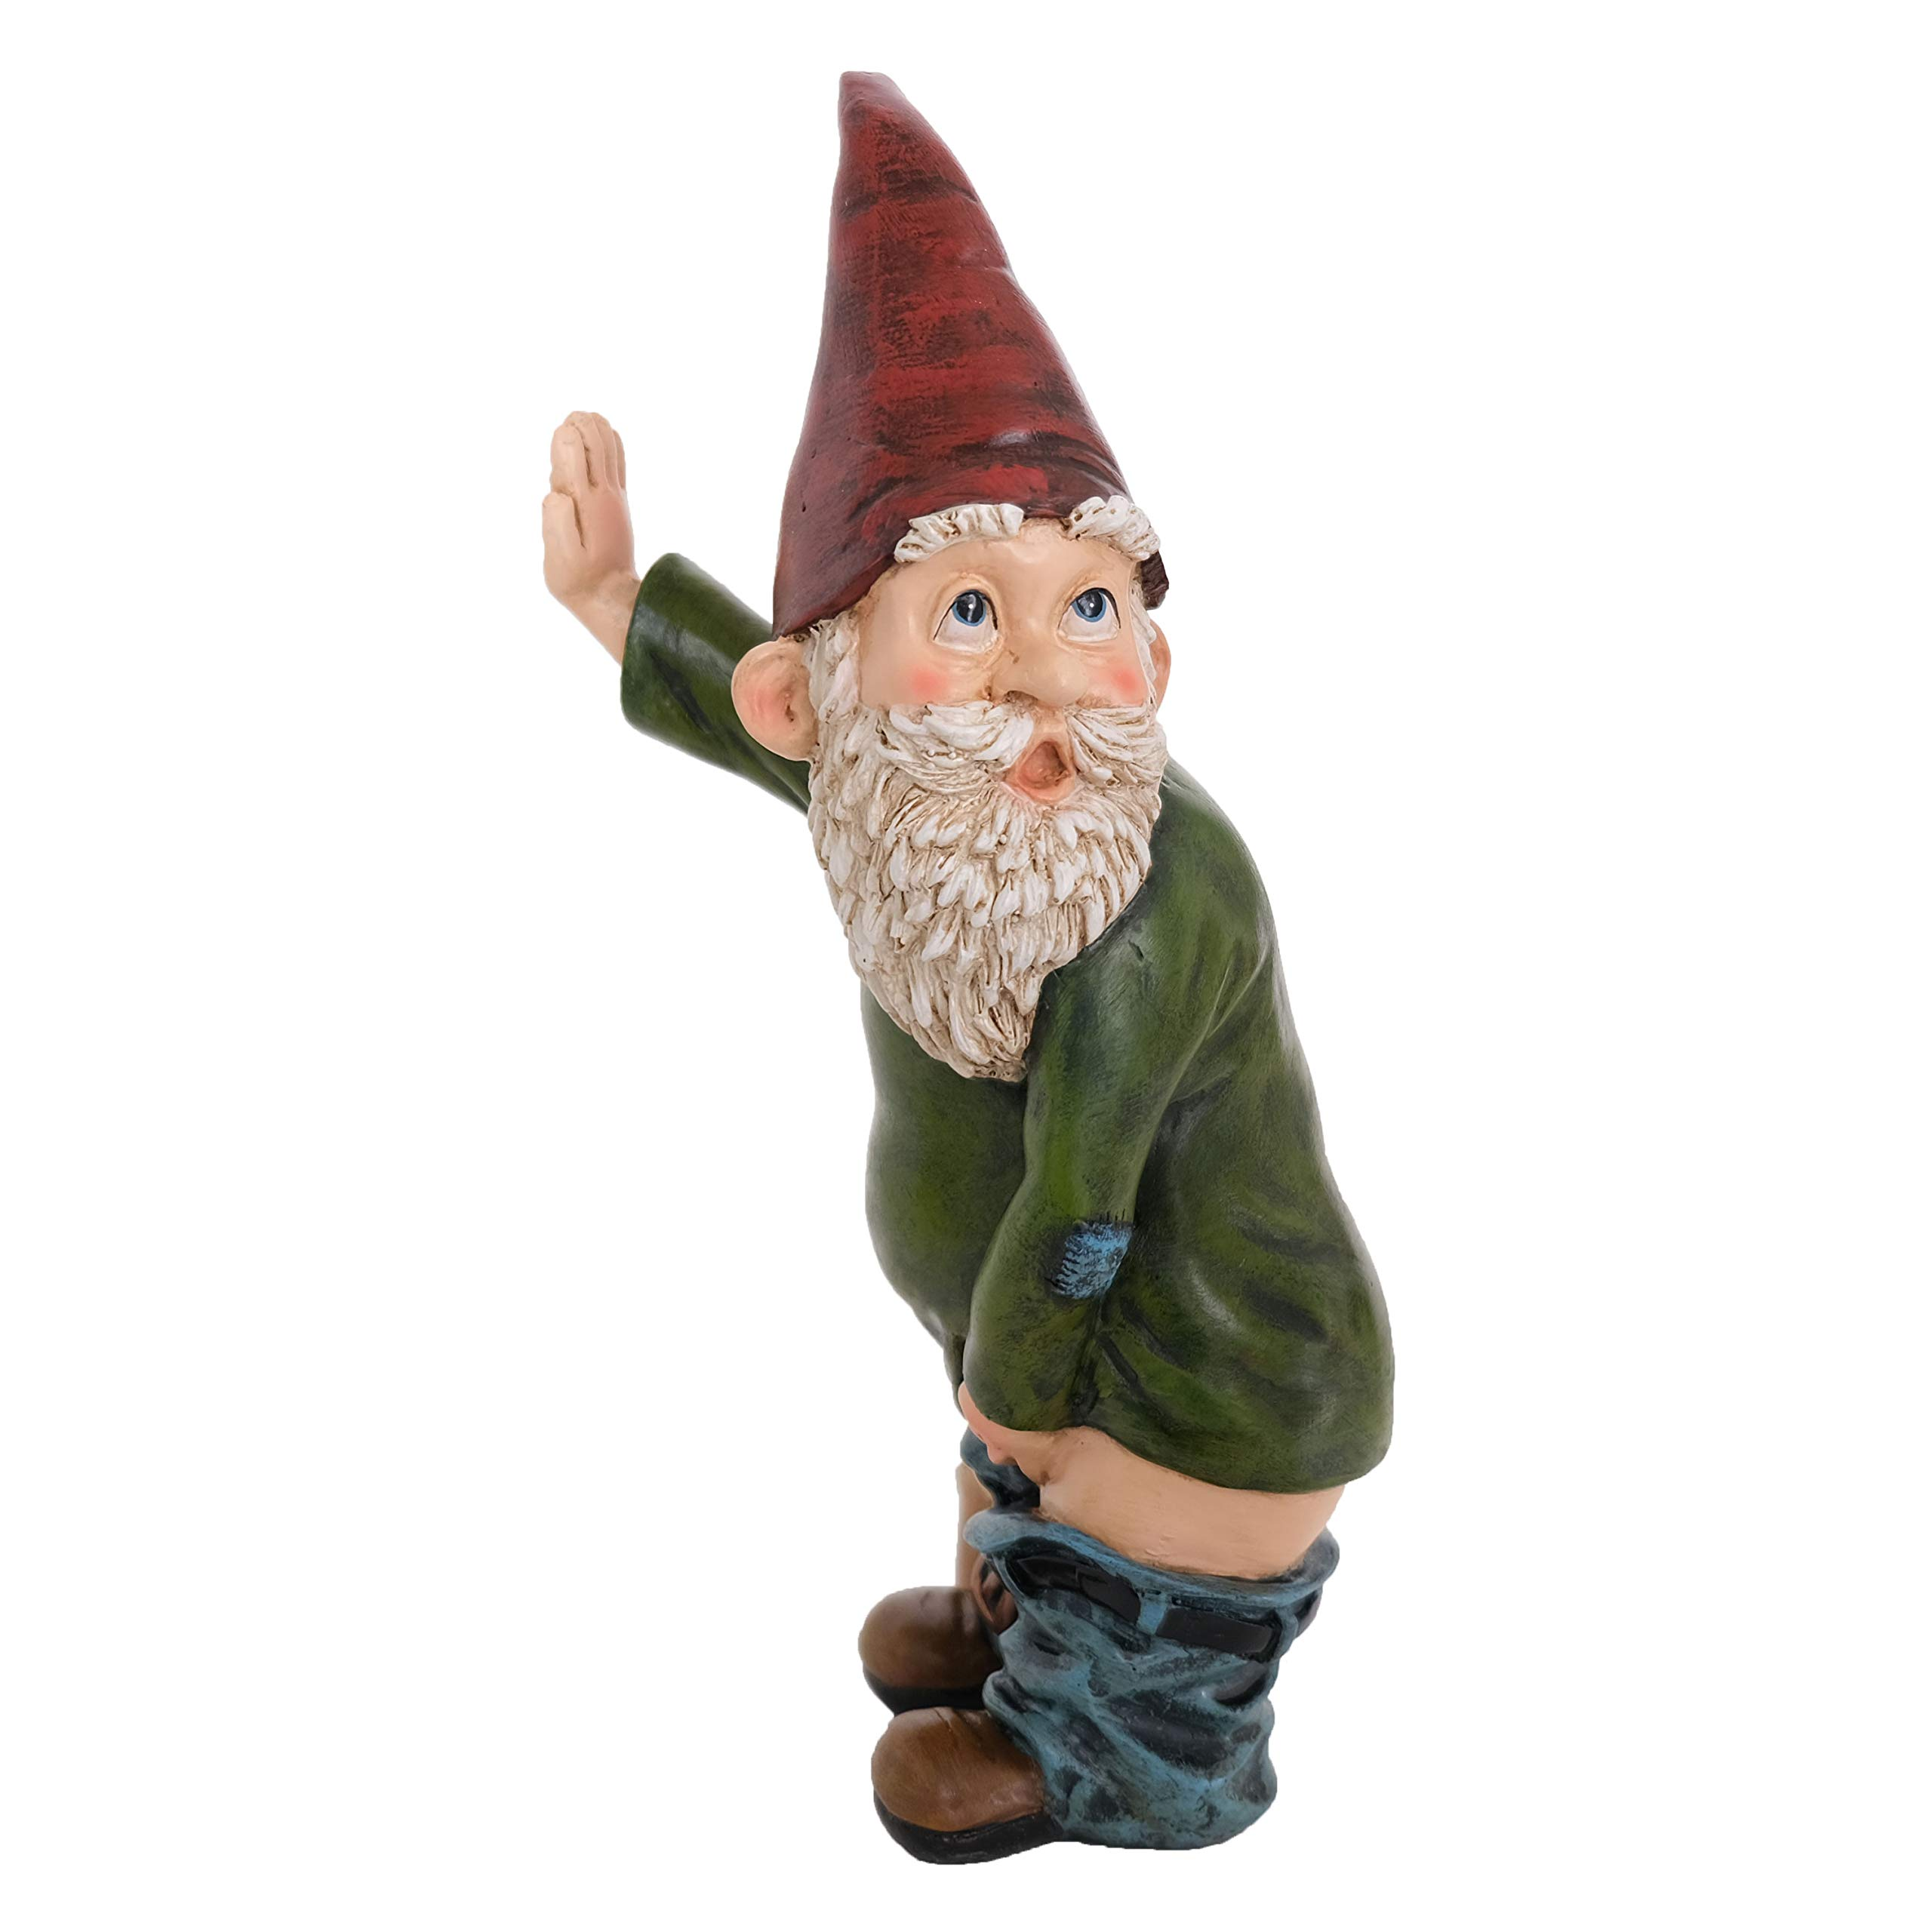 """Bella Haus Design Peeing Gnome - 10.3"""" Tall Polyresin - Naughty Garden Gnome for Lawn Ornaments, Indoor or Outdoor Decorations - Red and Green Funny Flashing Gnomes"""